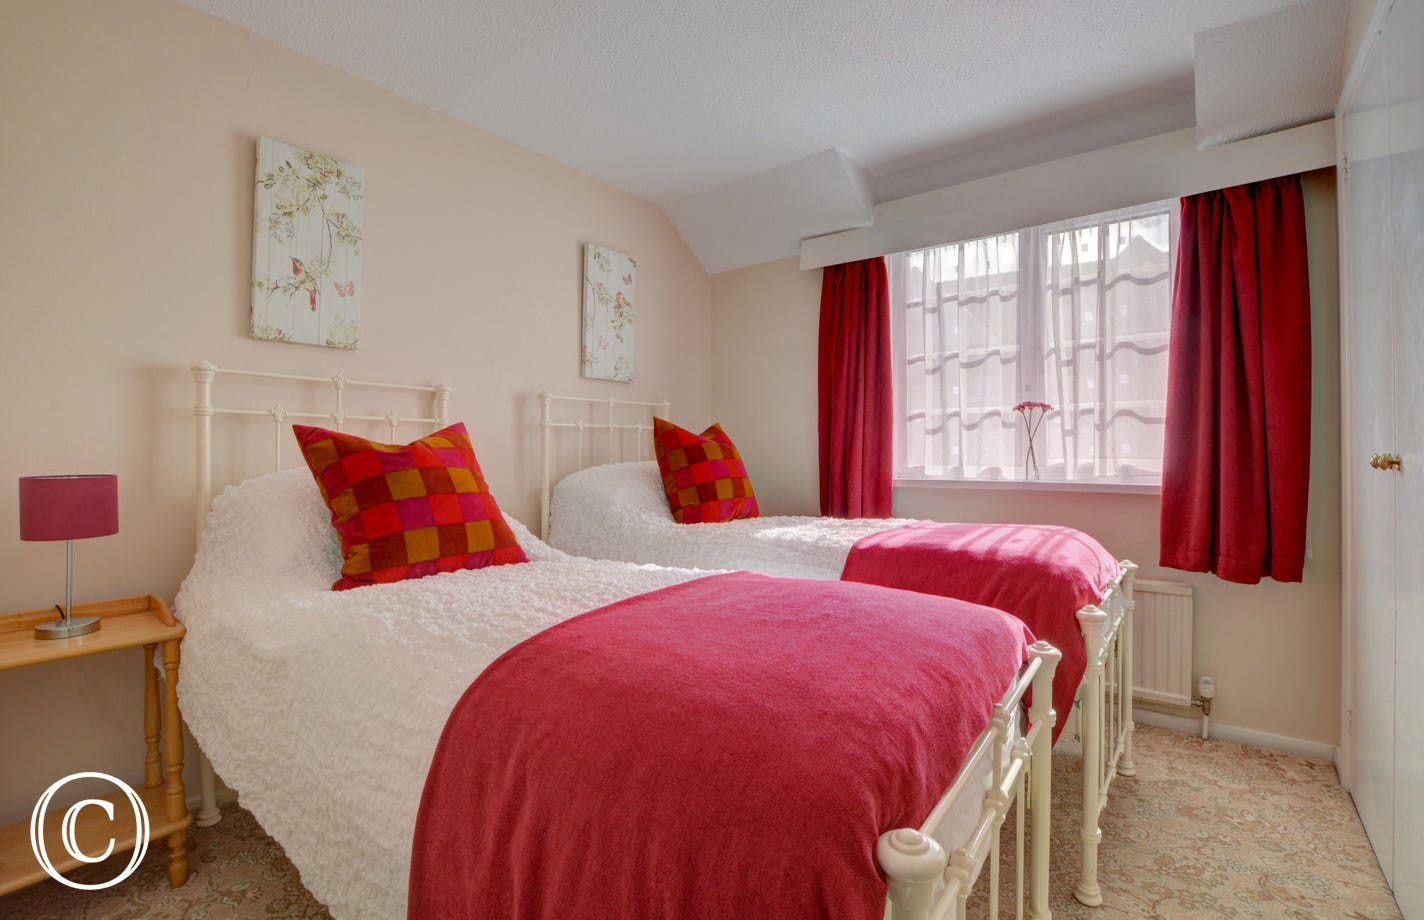 The twin bedroom is bright and cheerful, and on request can be made into a double bedroom